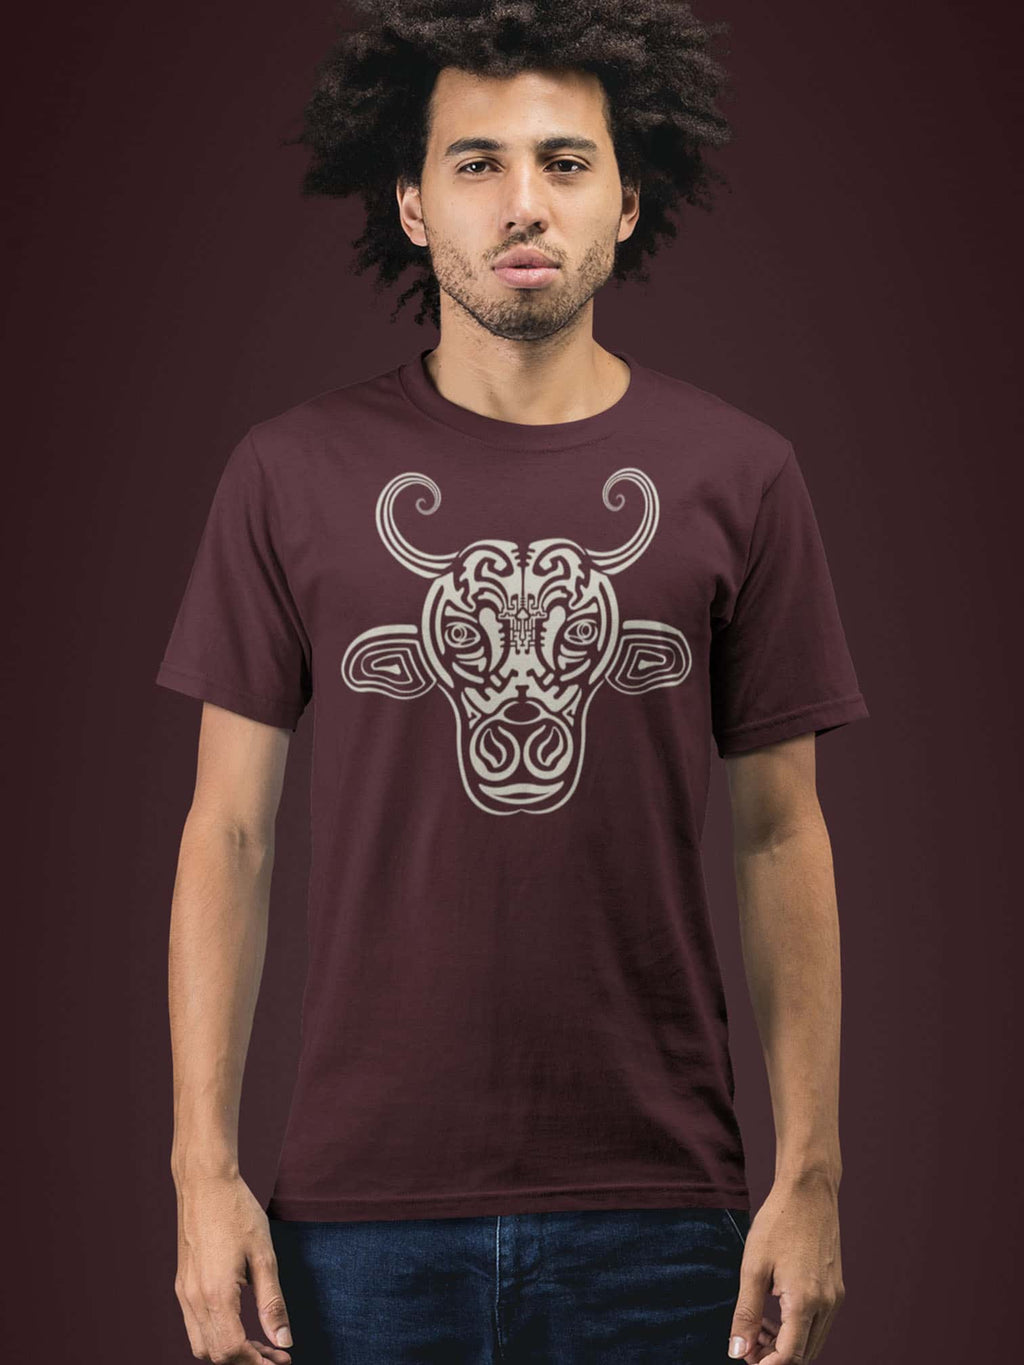 Holy Cow Made To Order Men T-Shirt - Burgundy